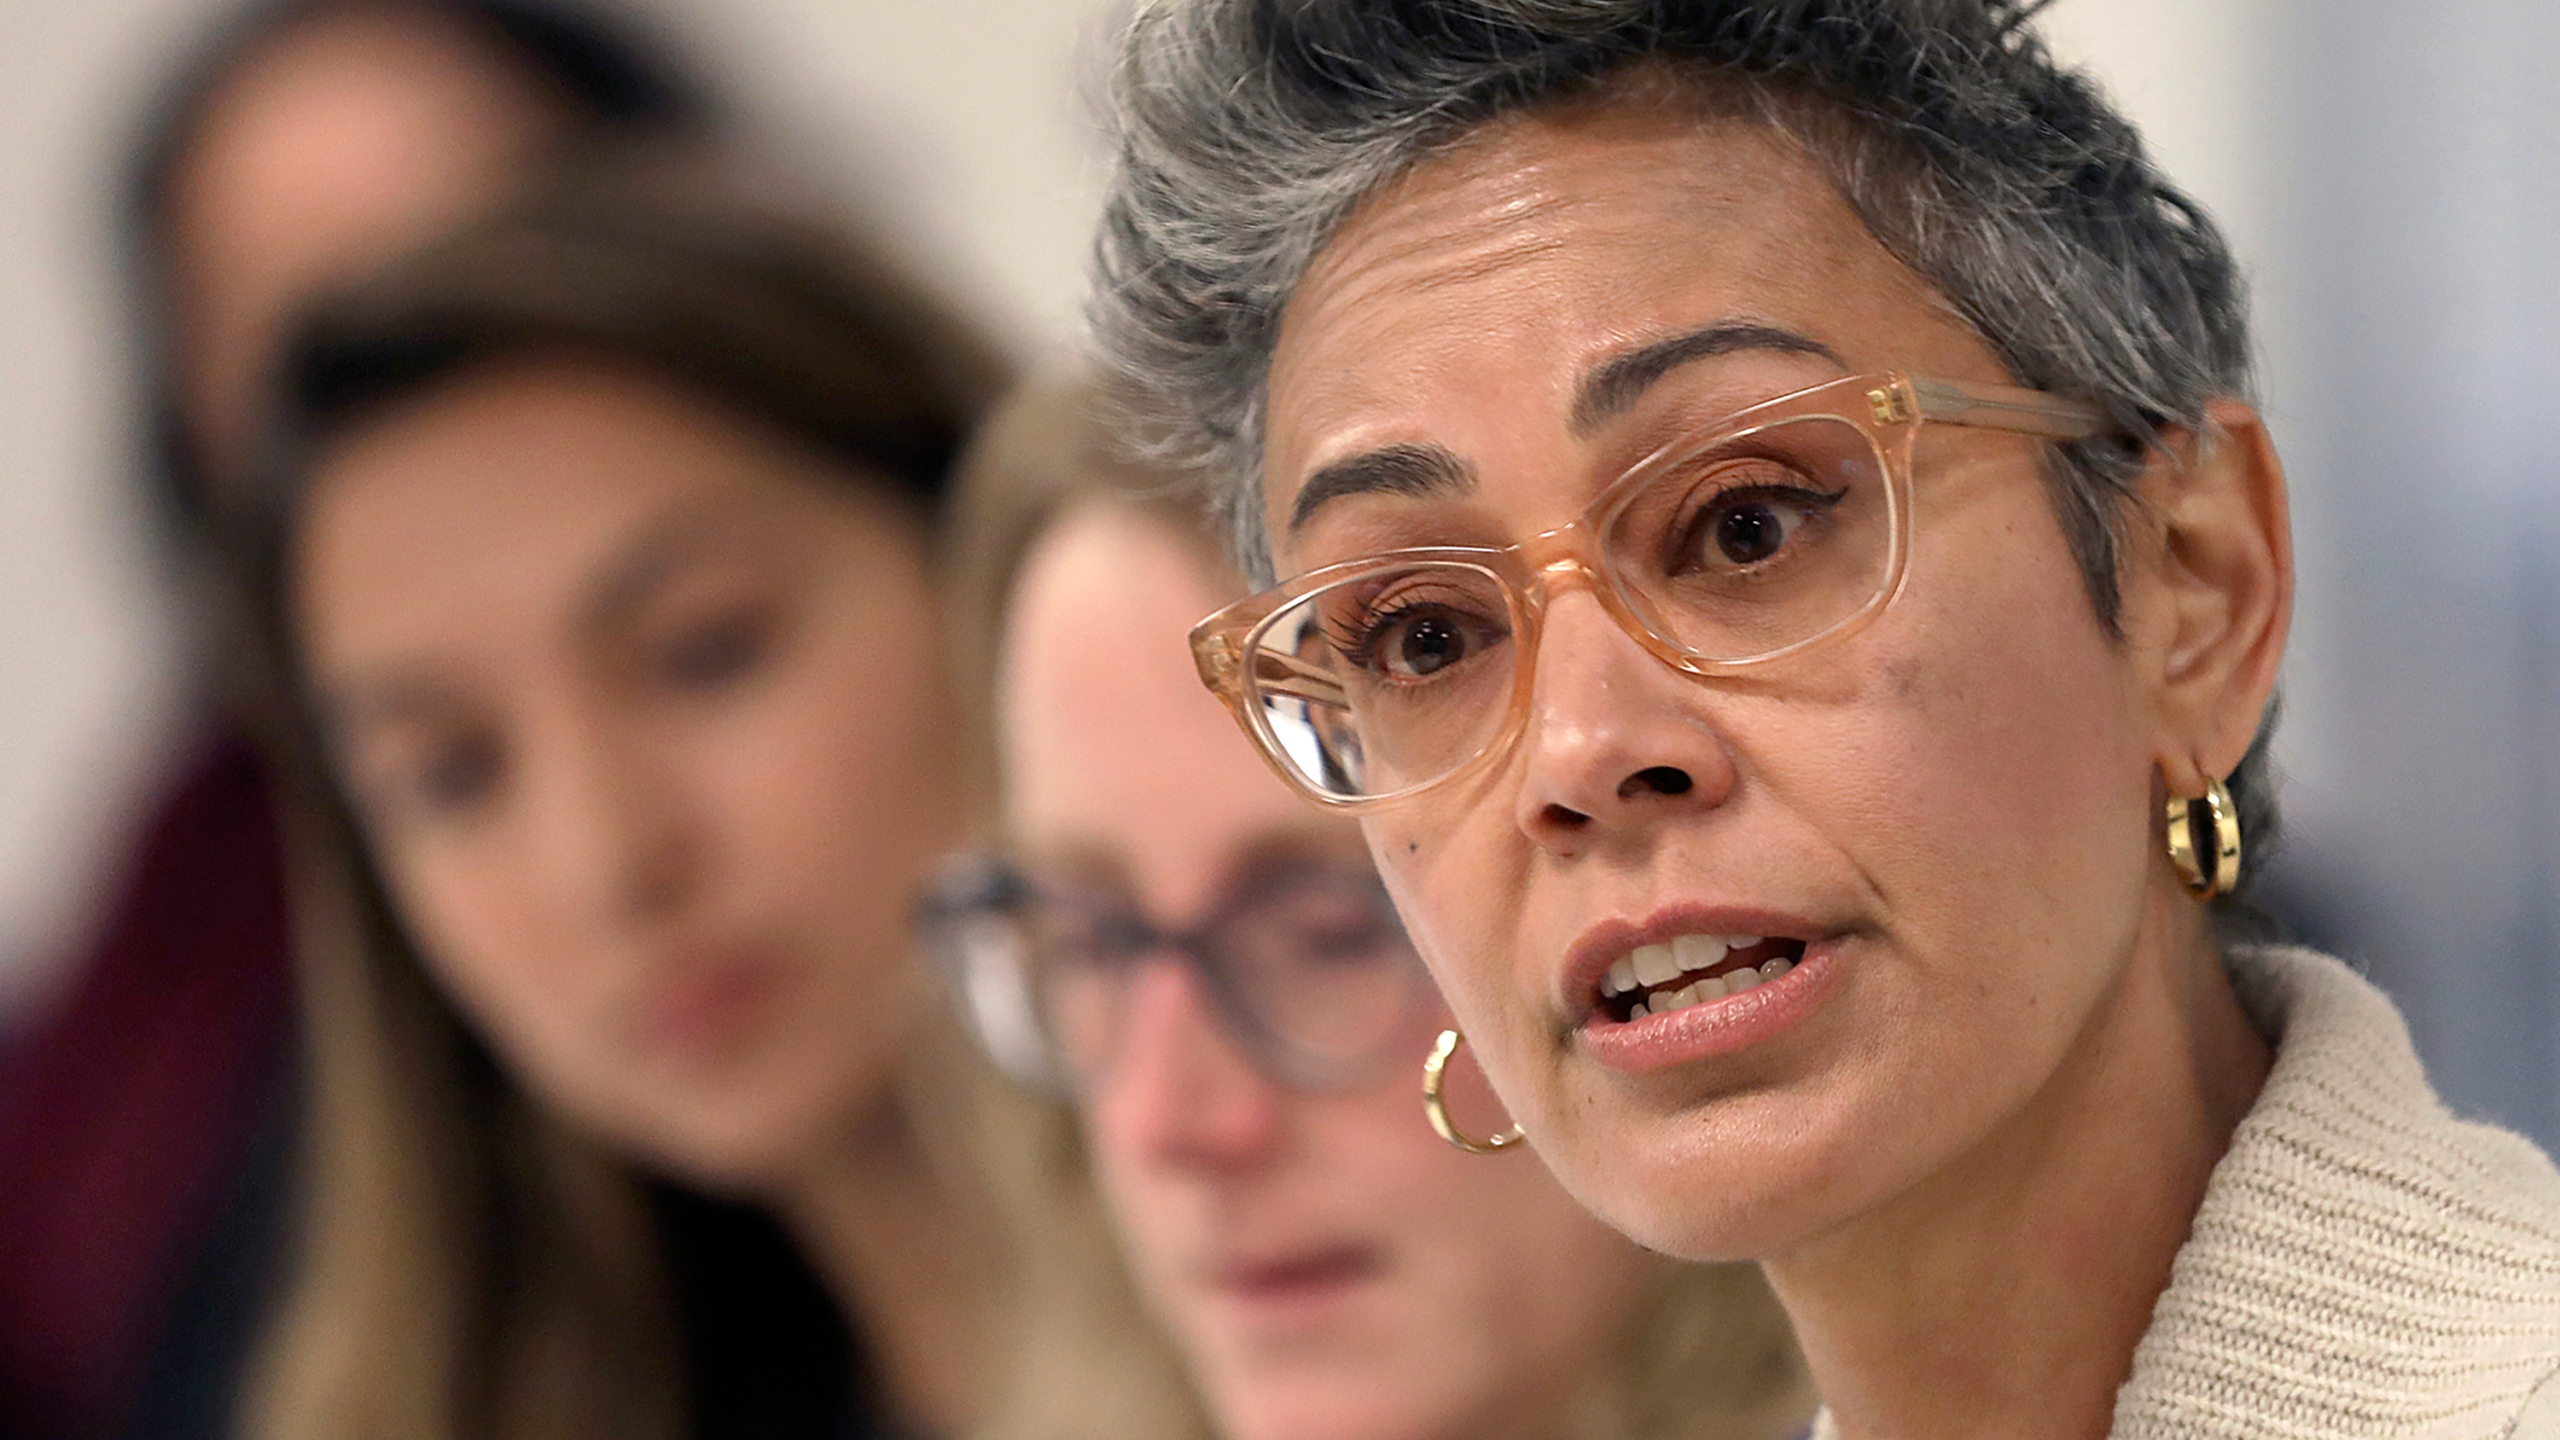 In this Sept. 26, 2018, file photo, Alison Collins, right, speaks during an editorial board meeting in San Francisco. A federal judge threw out an $87 million lawsuit Monday, Aug. 16, 2021, that San Francisco school board member Collins had filed against the district and her colleagues after they voted to strip her of senior board positions because of tweets that were widely criticized as racist. In his ruling, Judge Haywood Gilliam Jr. said the claims by Collins had no merit and there was no need to argue the case in court, the San Francisco Chronicle reported. (Liz Hafalia/San Francisco Chronicle via AP, File)